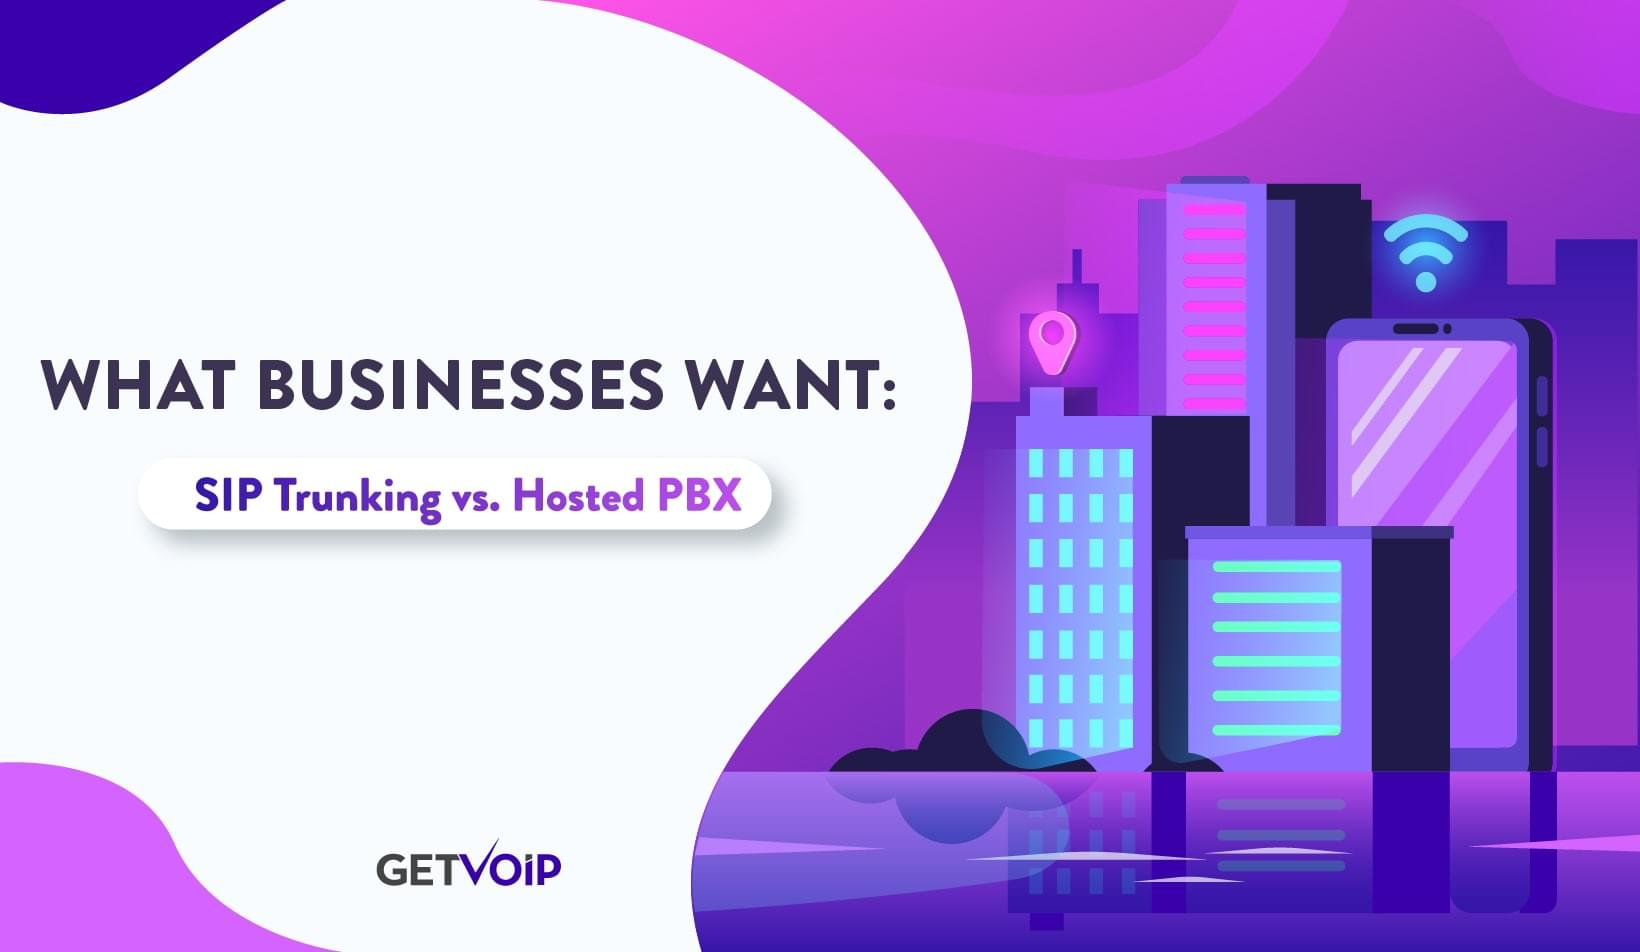 Hosted PBX vs SIP Trunking: Pros, Cons, Features